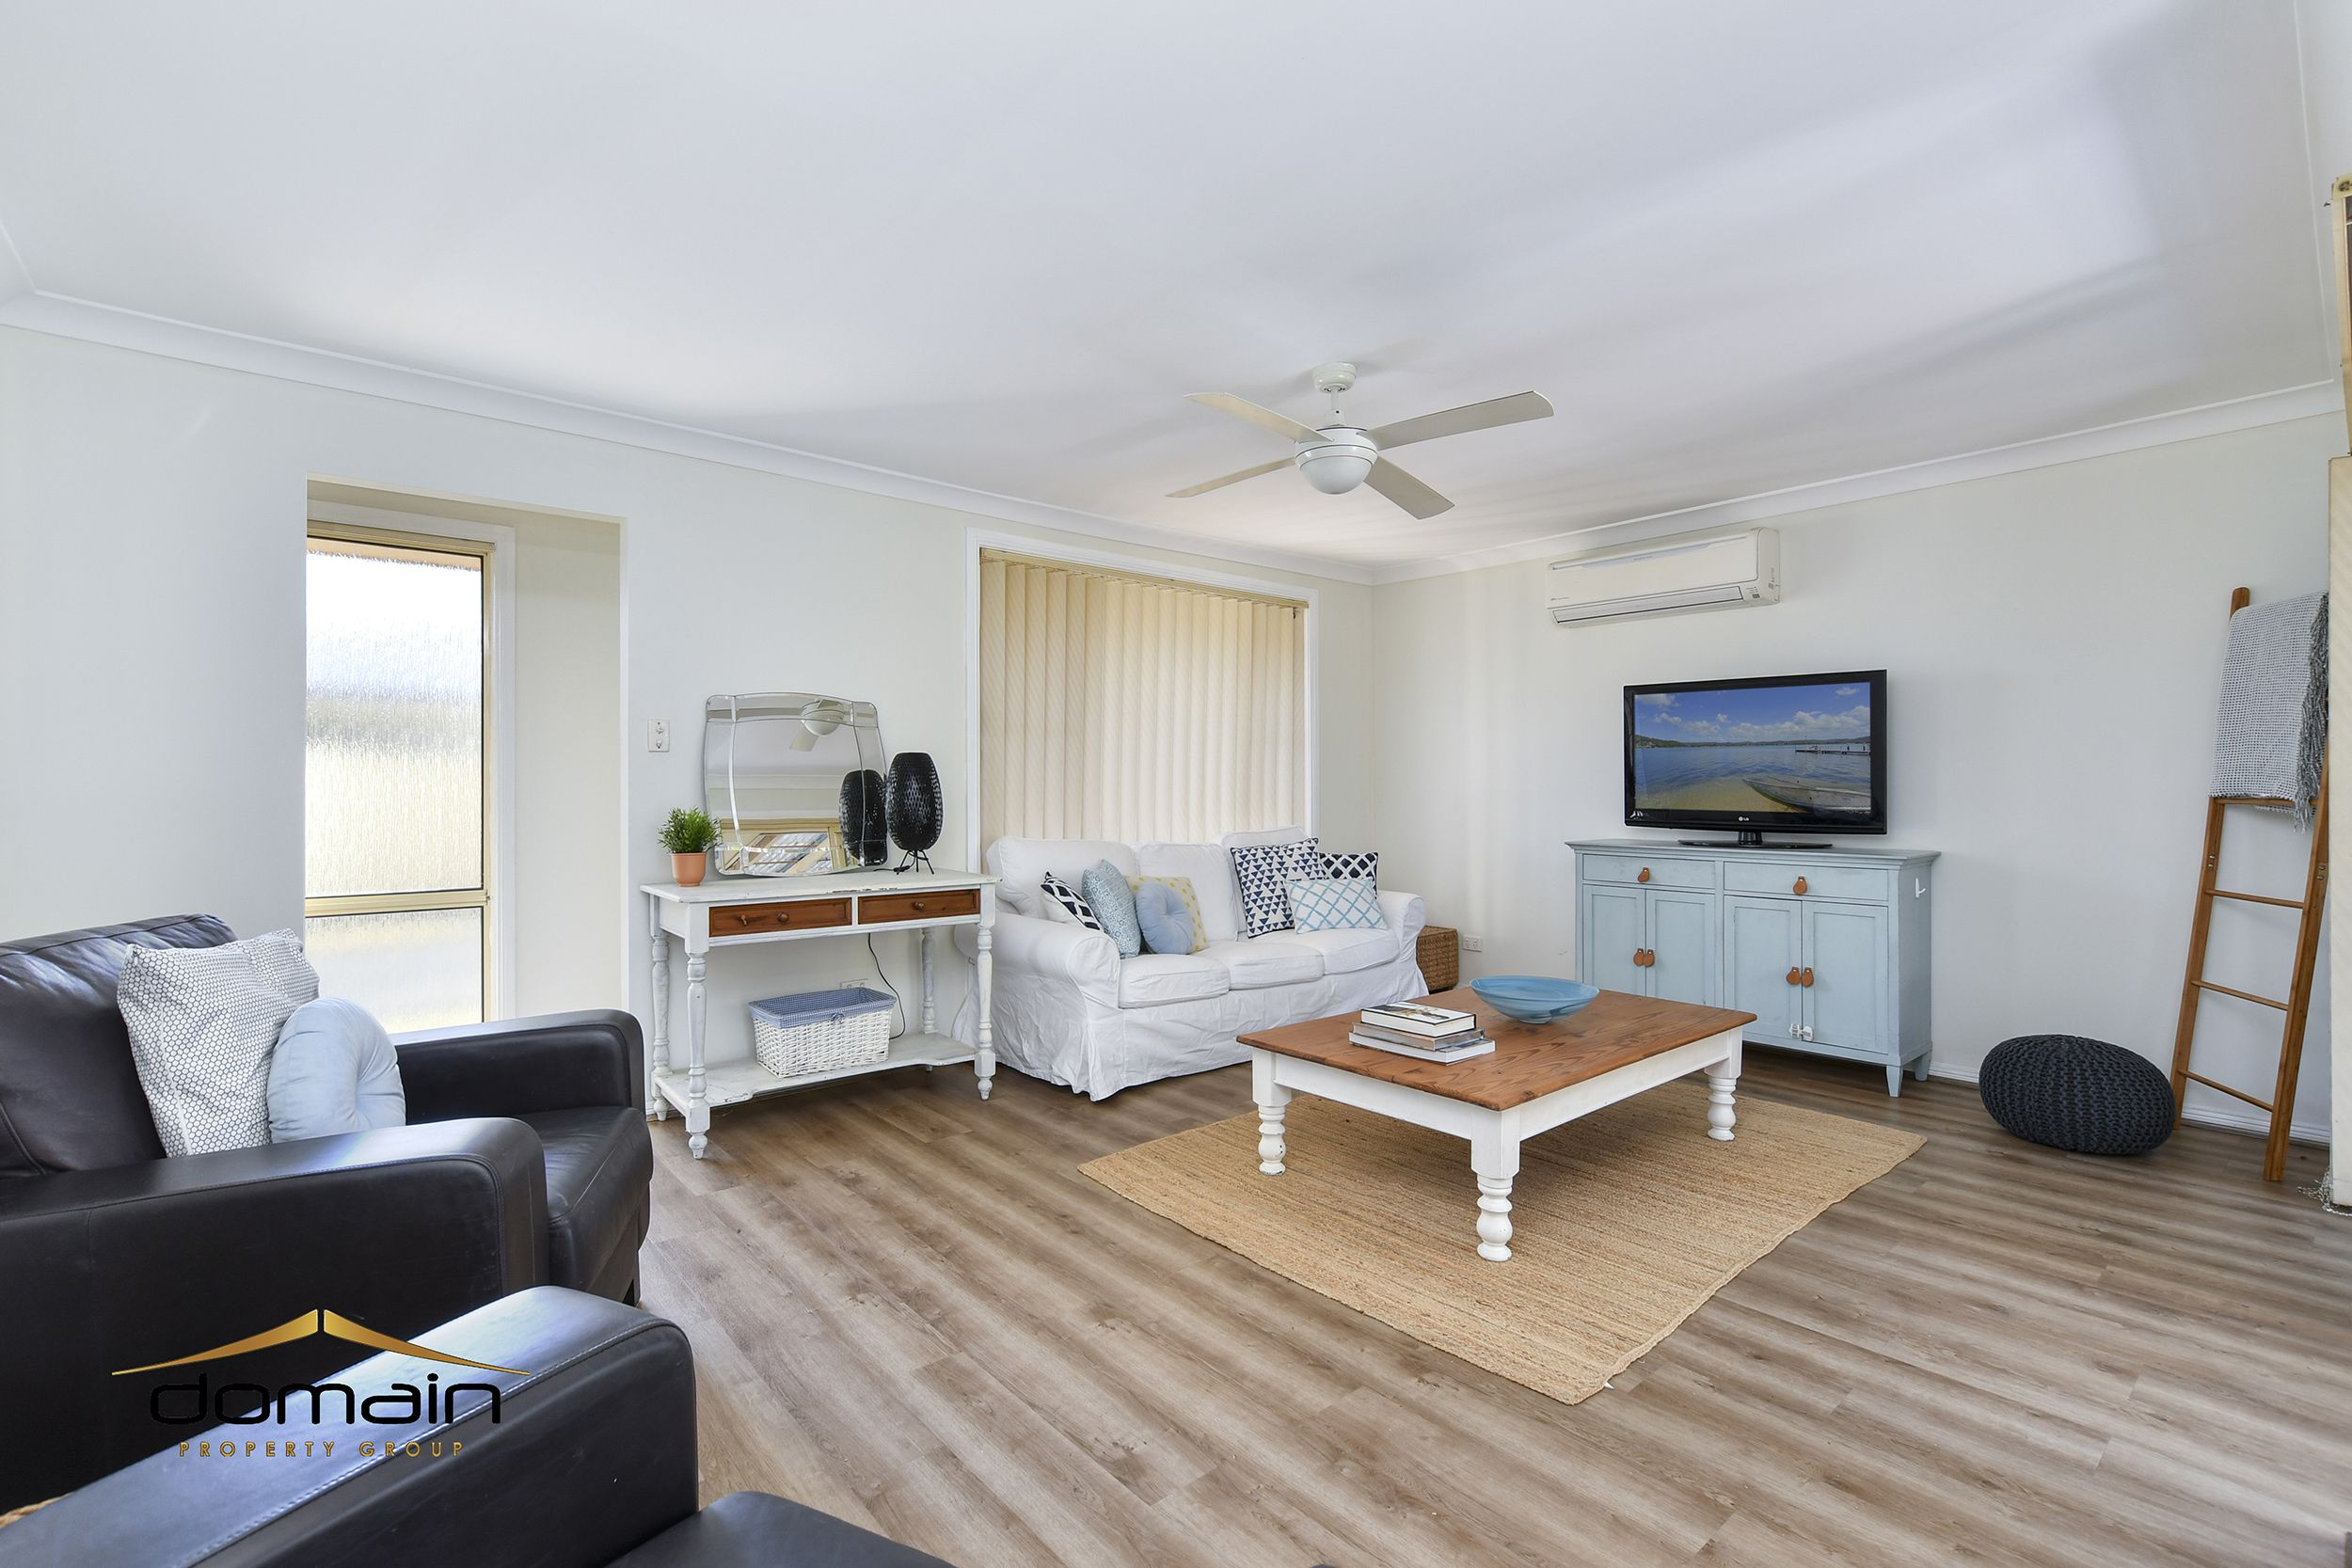 2/23 Collareen Street Ettalong Beach 2257